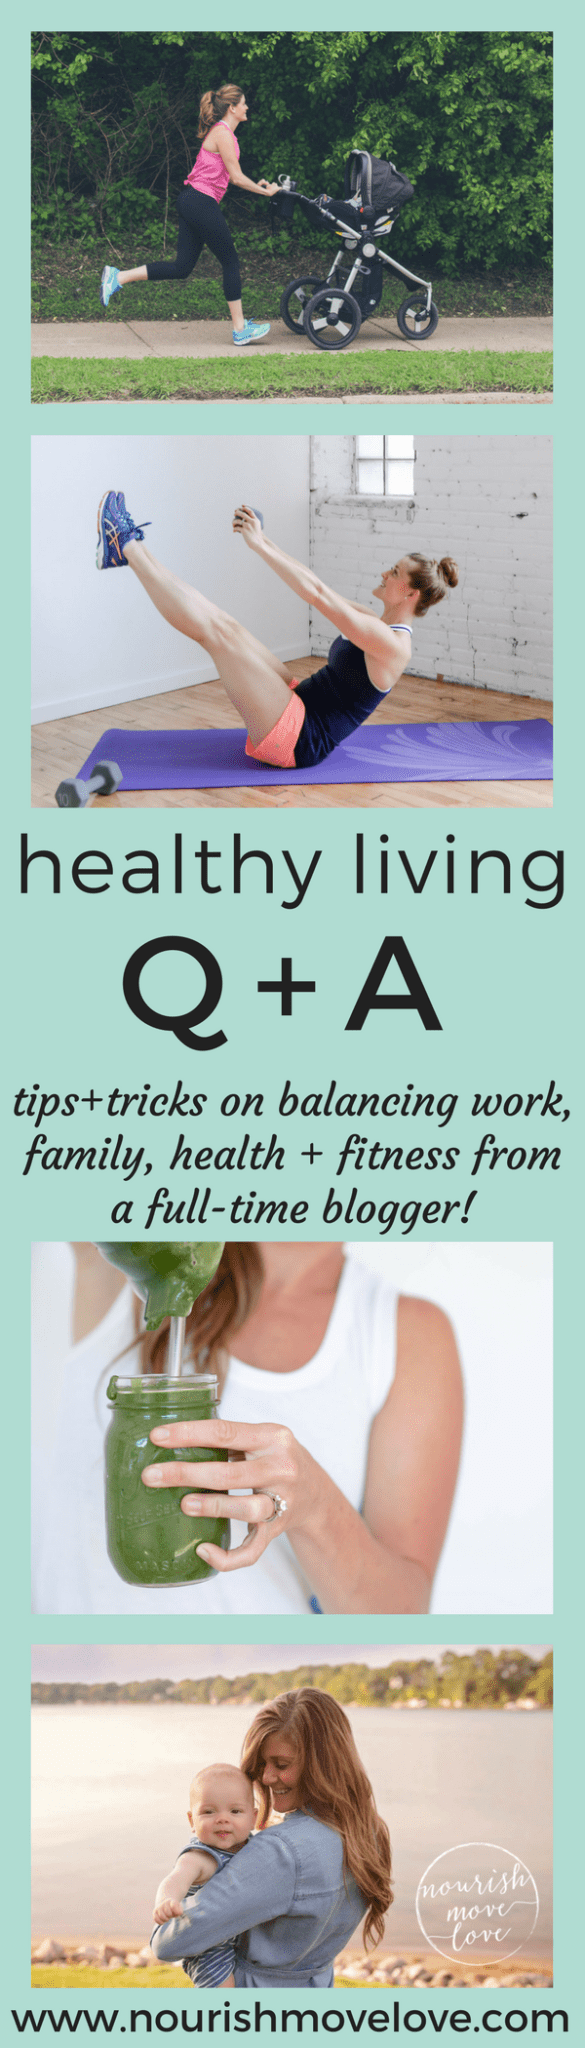 Healthy Living Q + A Post | www.nourishmovelove.com